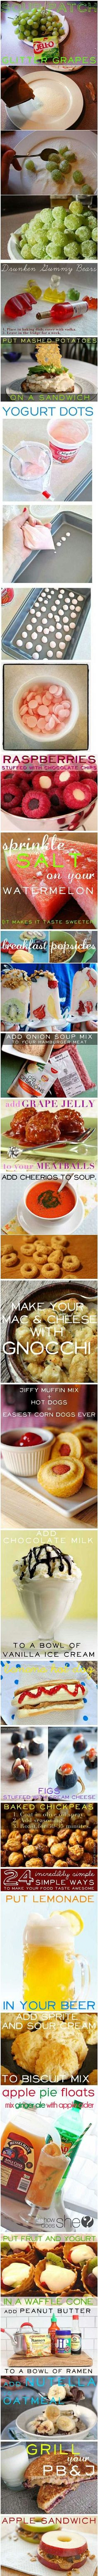 24 ways to make your food more awesome